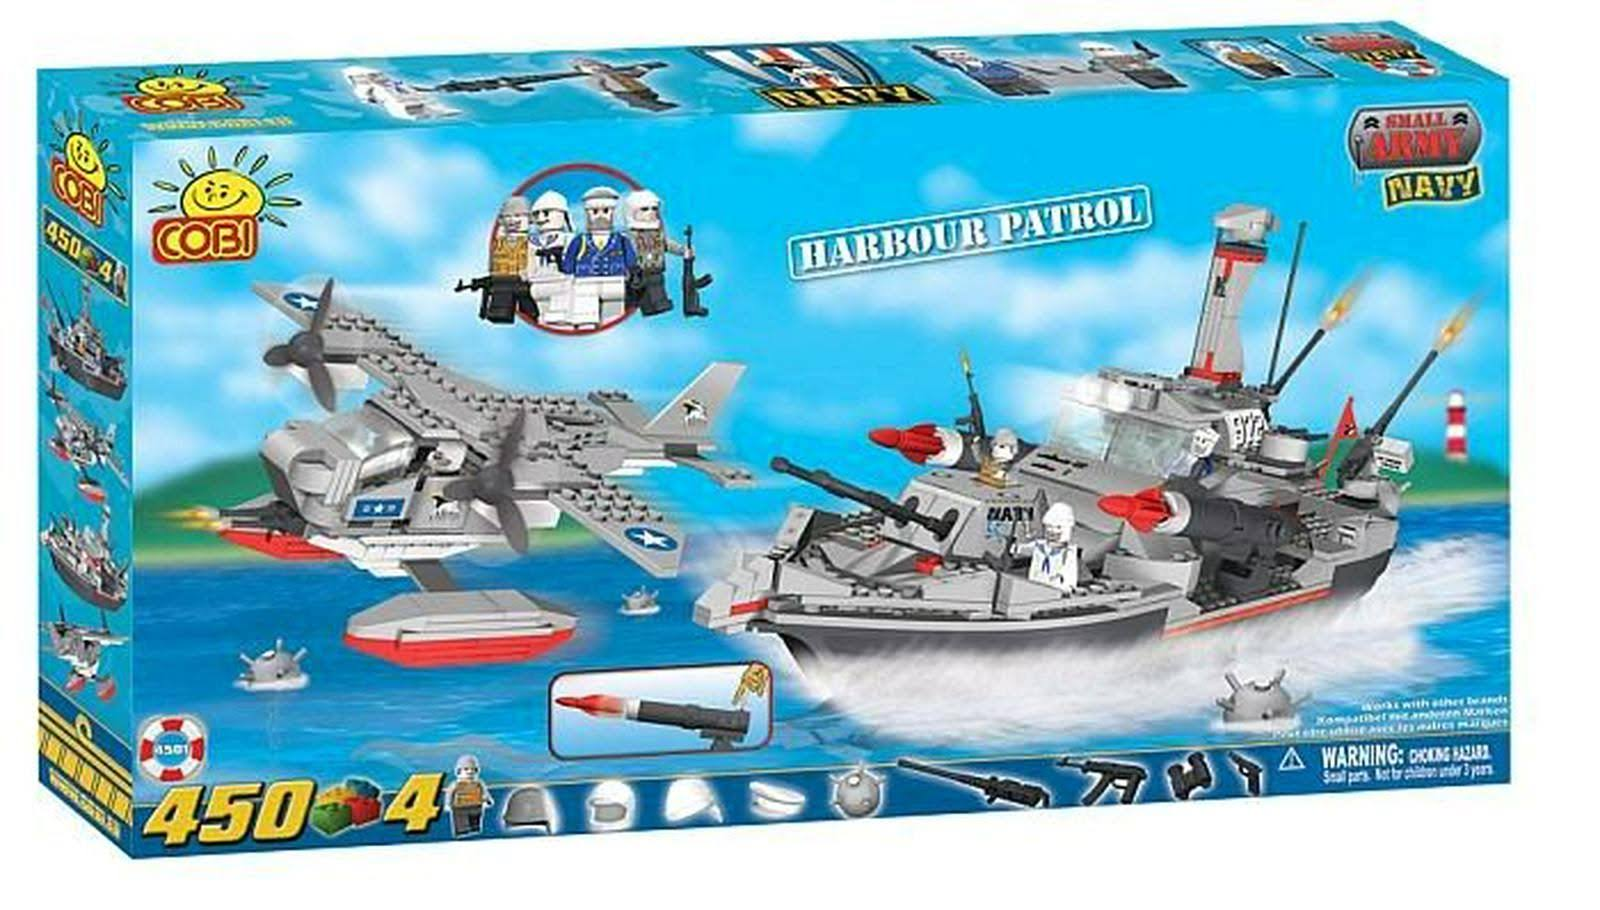 Cobi 4501 Small Army Harbor Patrol Set - 450pc